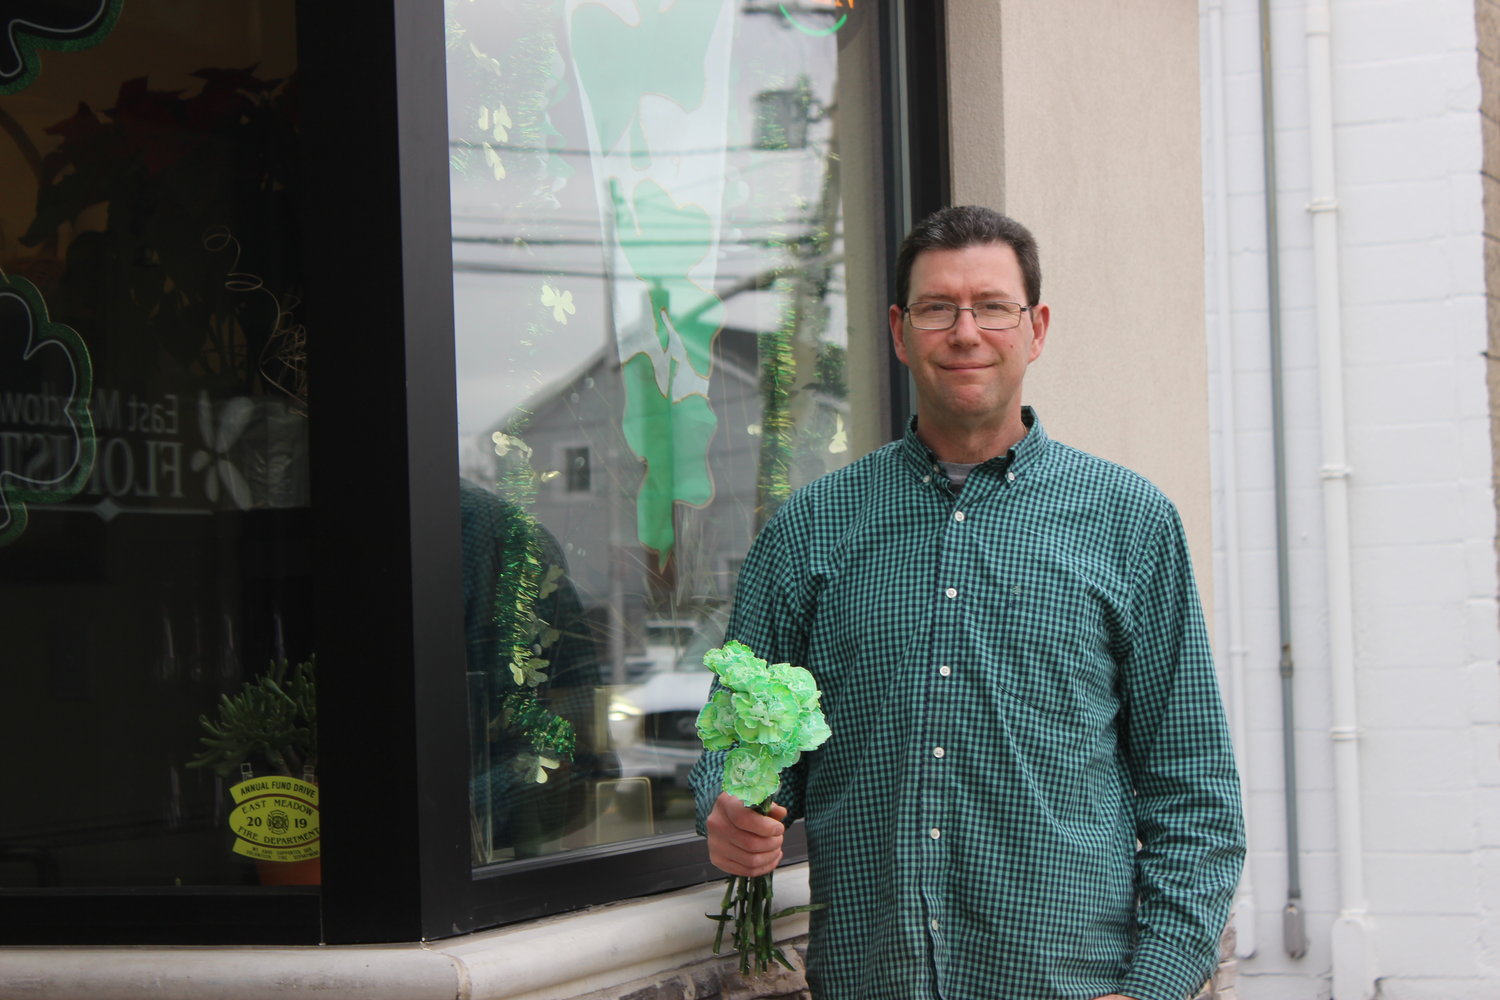 The East Meadow Florist is still ringing in the spring and open for pickup and delivery. Owner Chris Hackert gave away 500 green carnations after St. Patrick's Day when an order was canceled.